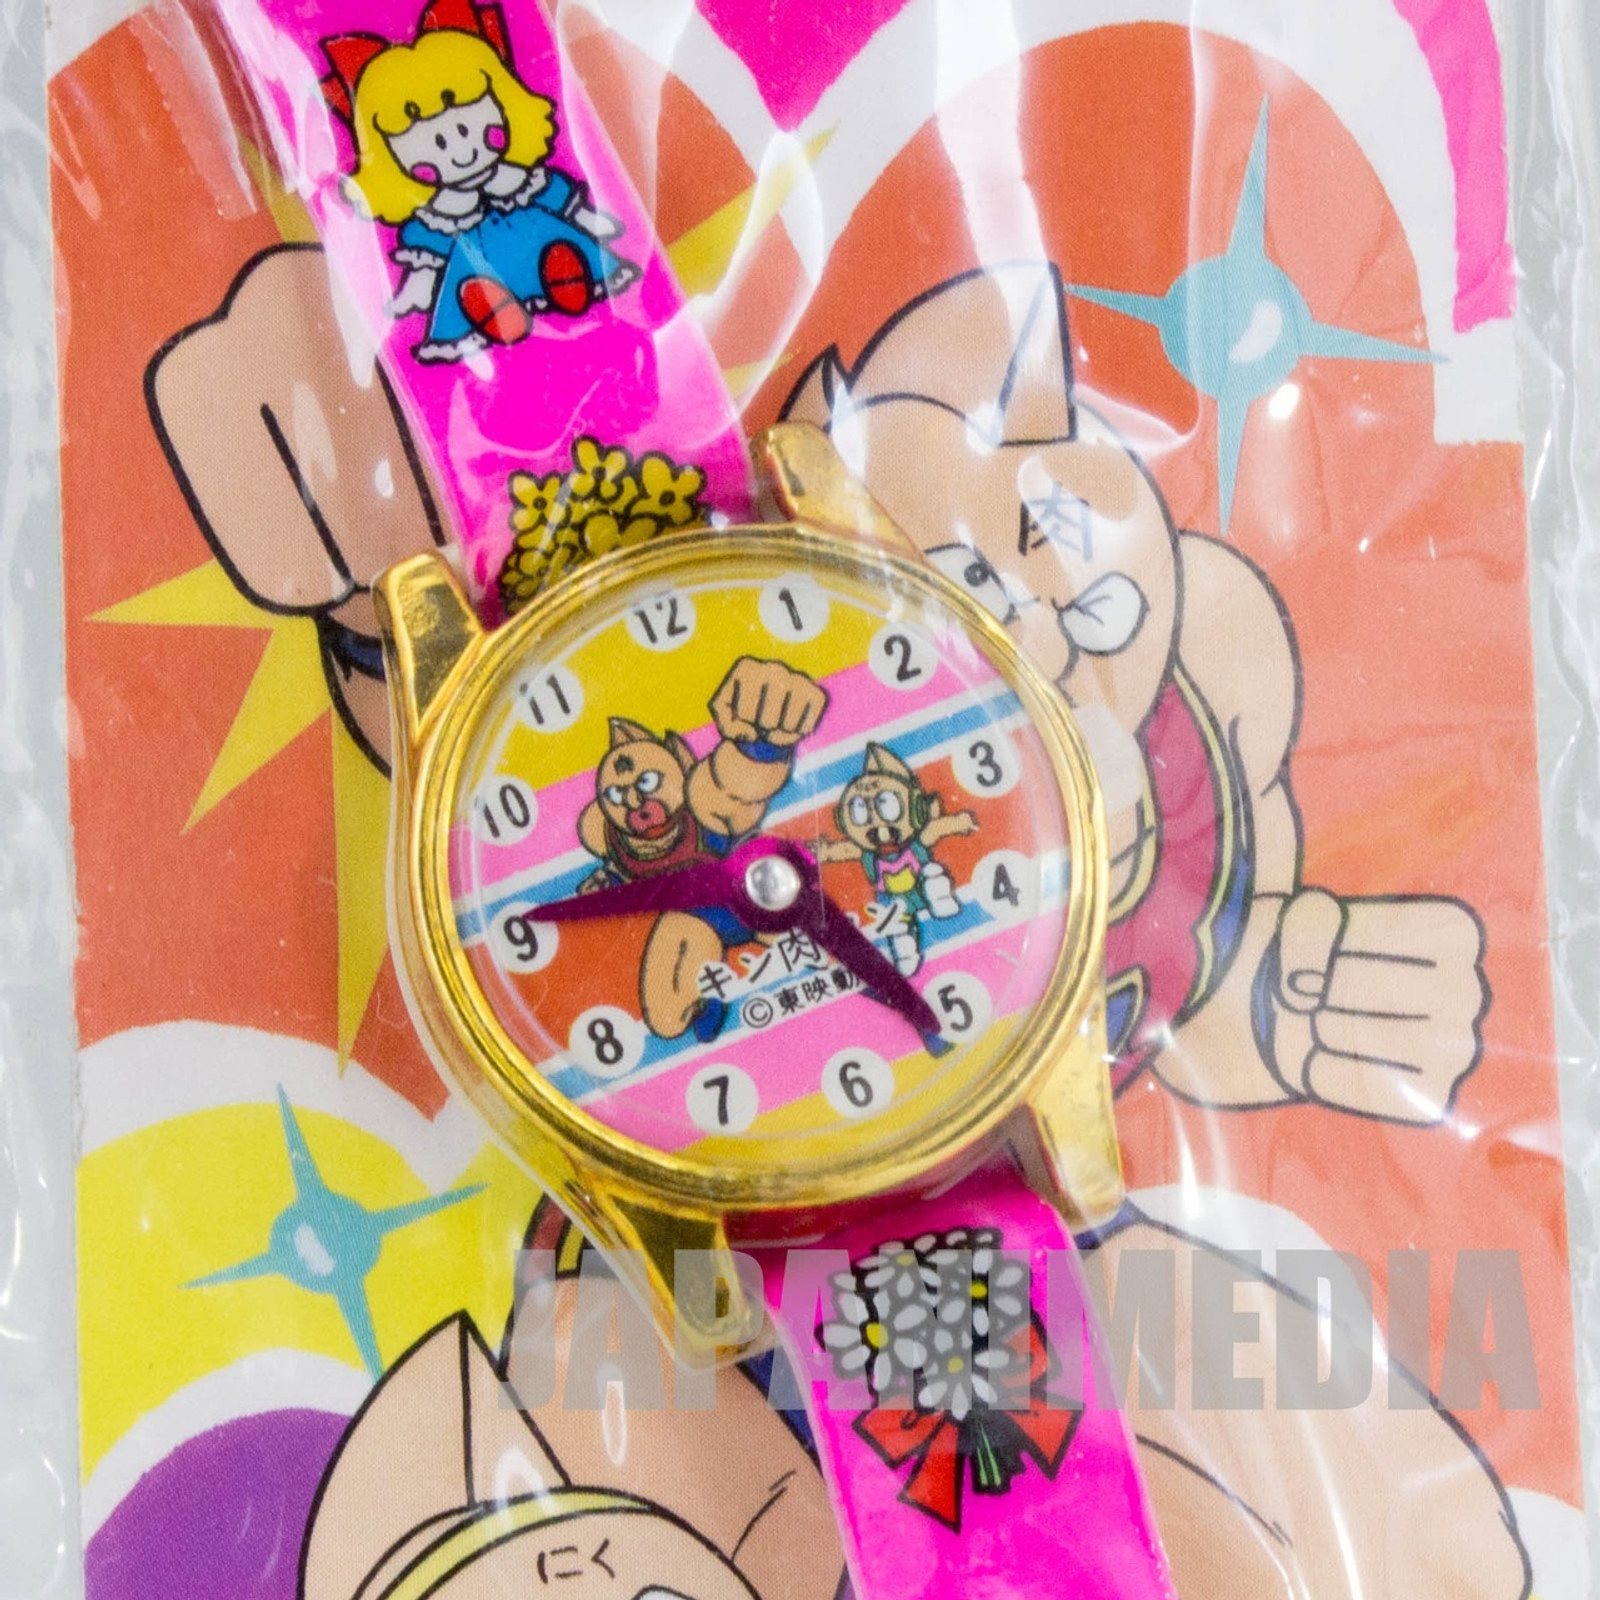 Retro RARE! Kinnikuman Charmy Watch Toy JAPAN ANIME ULTIMATE MUSCLE MAN 3